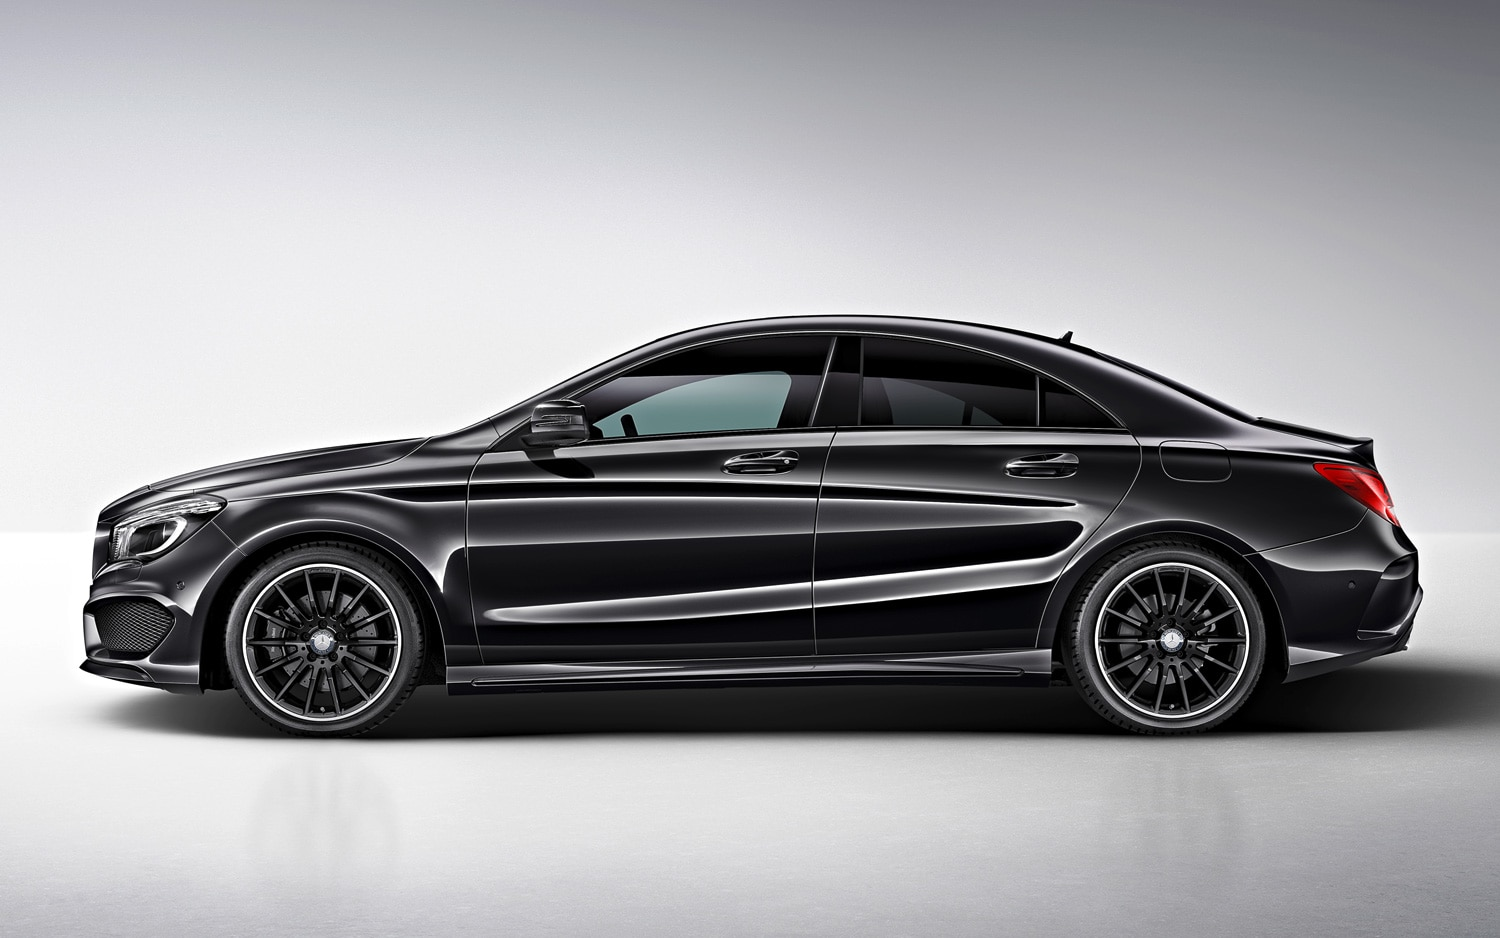 Mercedes benz cla class gains limited run edition 1 package for Mercedes benze cla